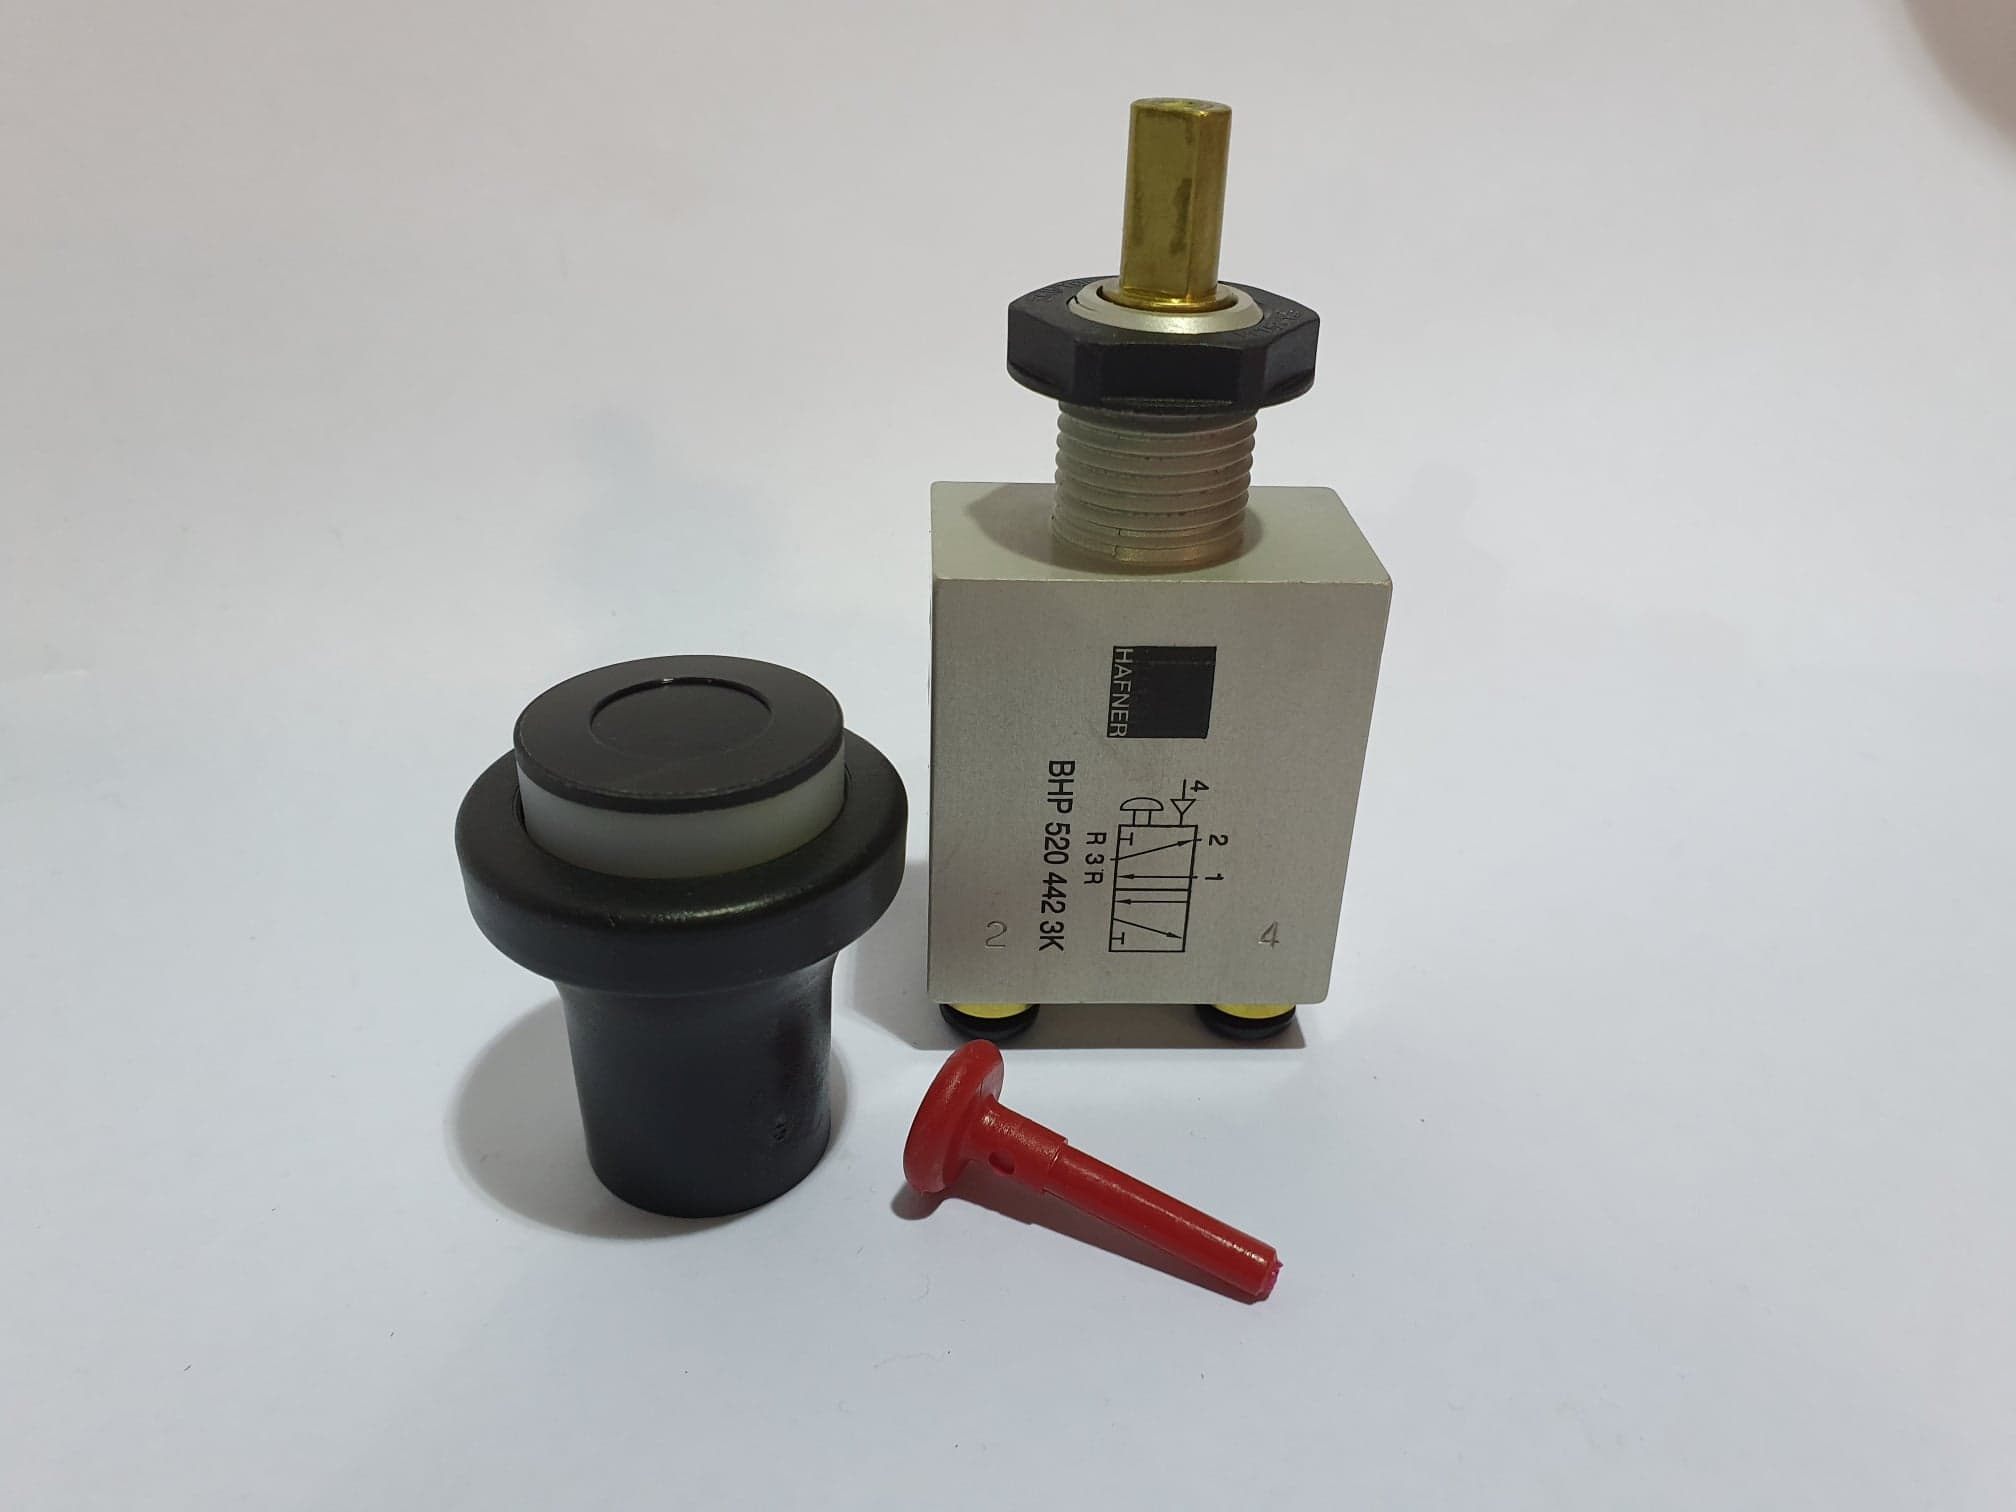 Foot Valve Push/Pull Valve-Switch